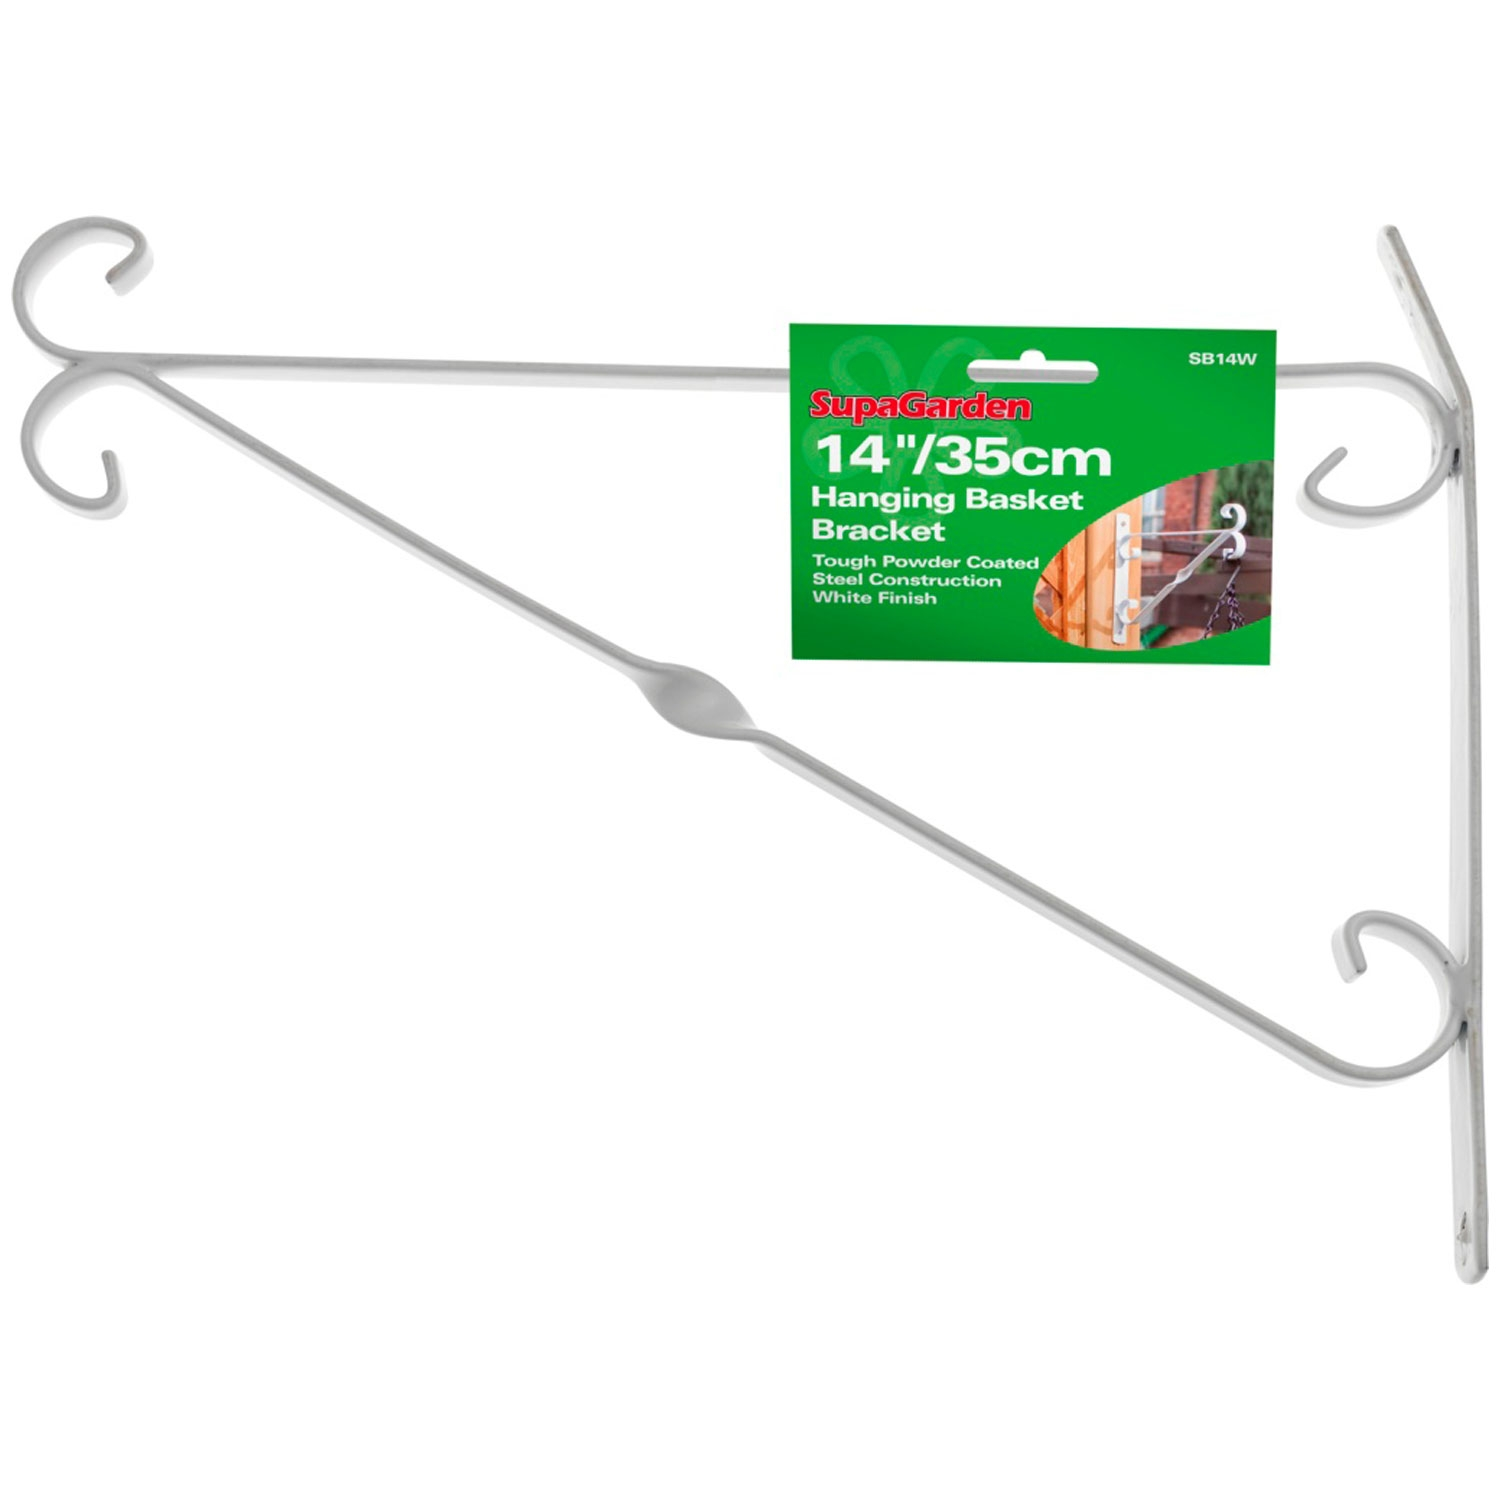 SupaGarden Hanging Basket Bracket 35cm/14